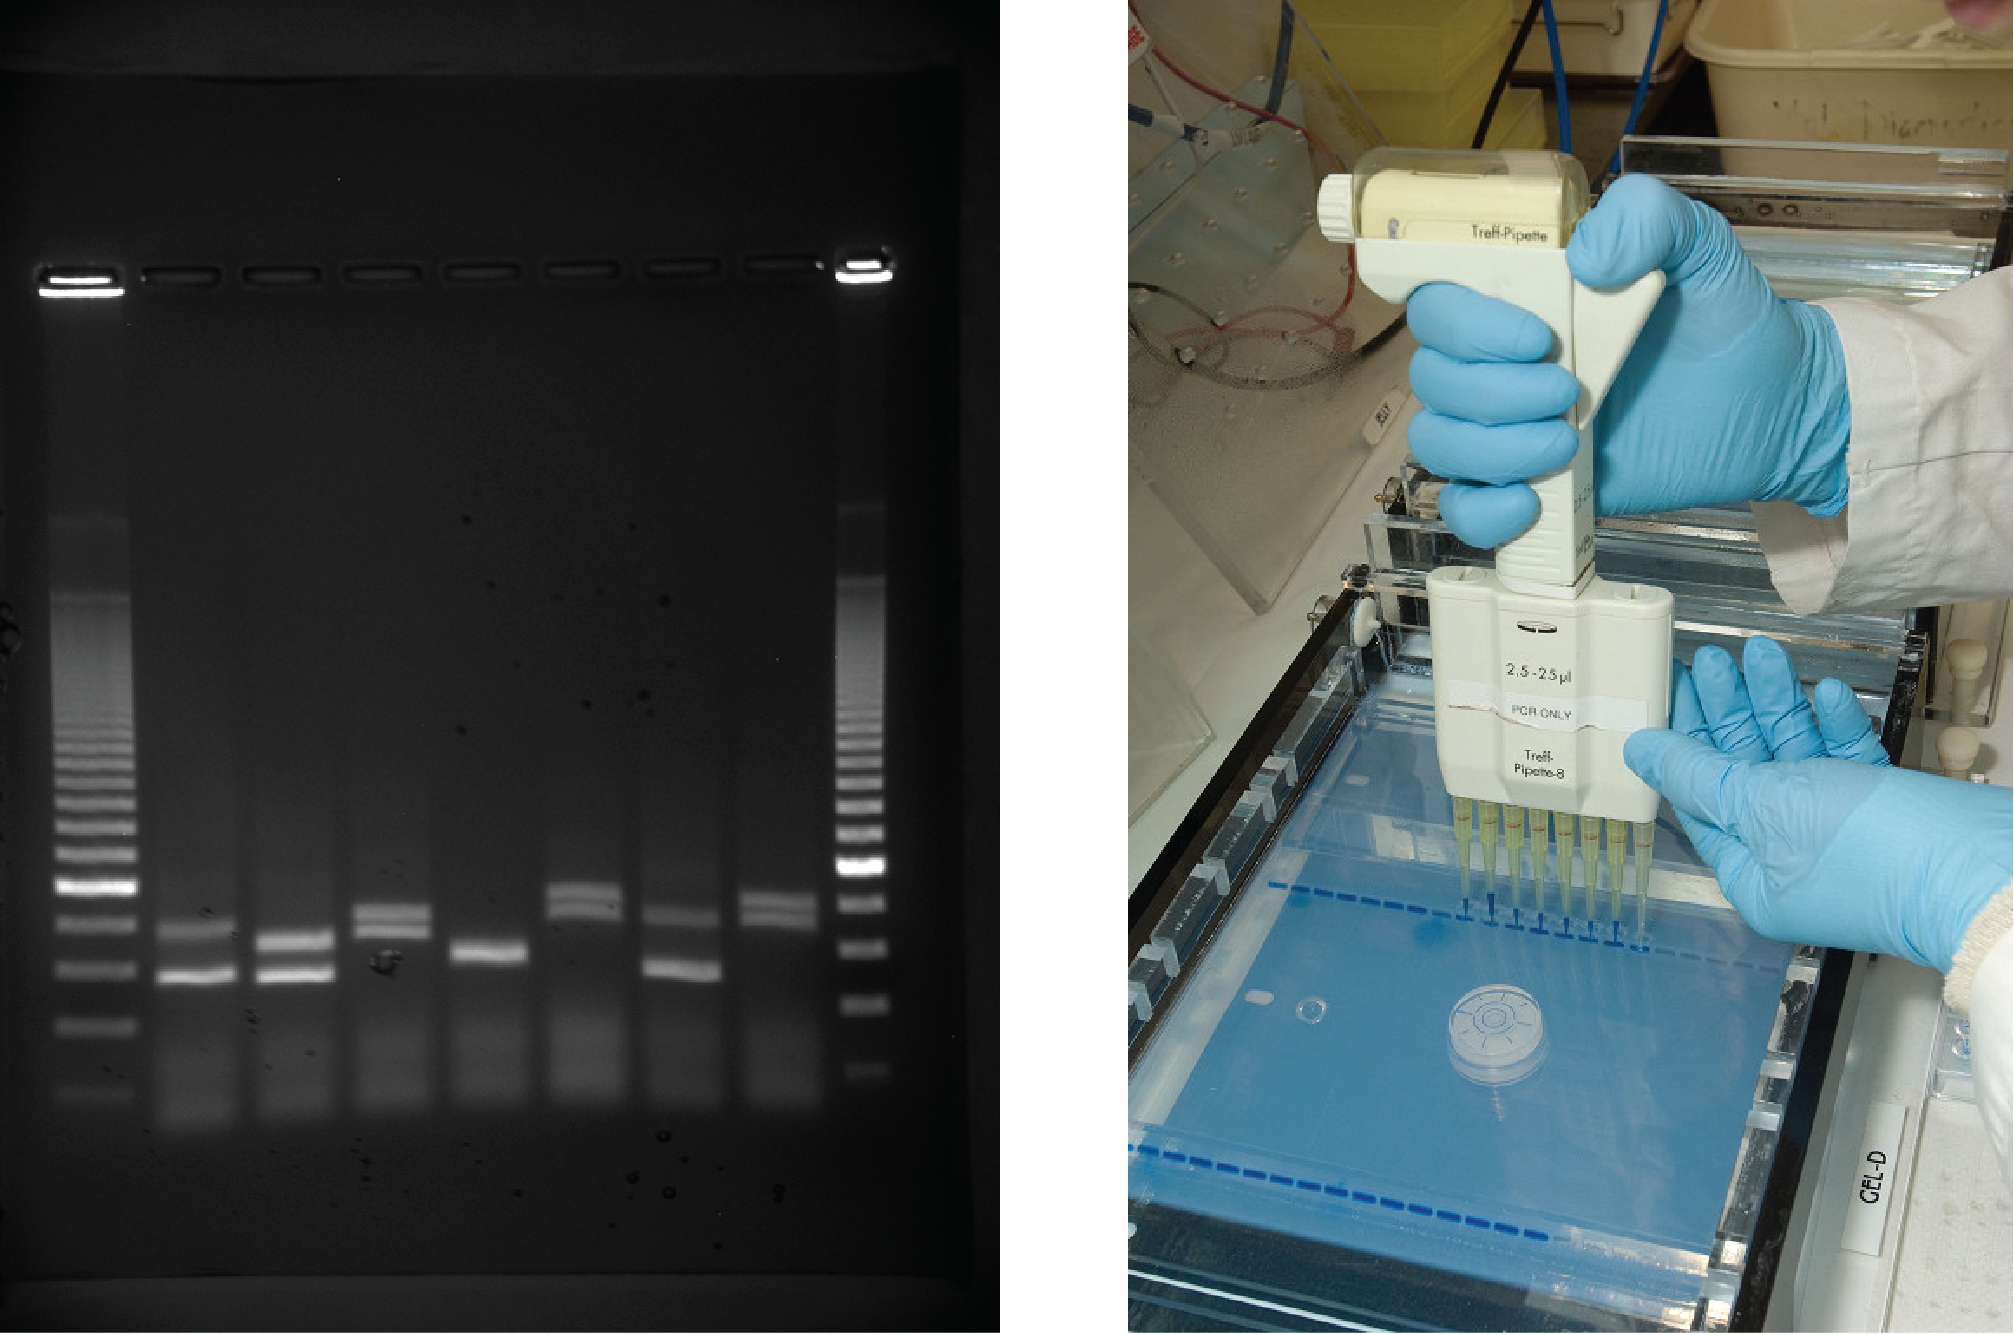 Image shows a person using a handheld device with eight pipettes holding DNA material. The person places the device's pipettes directly over a prepared gel inside an electrphoresis machine. The gel already contains several lines of material where the user has previouly loaded DNA material.